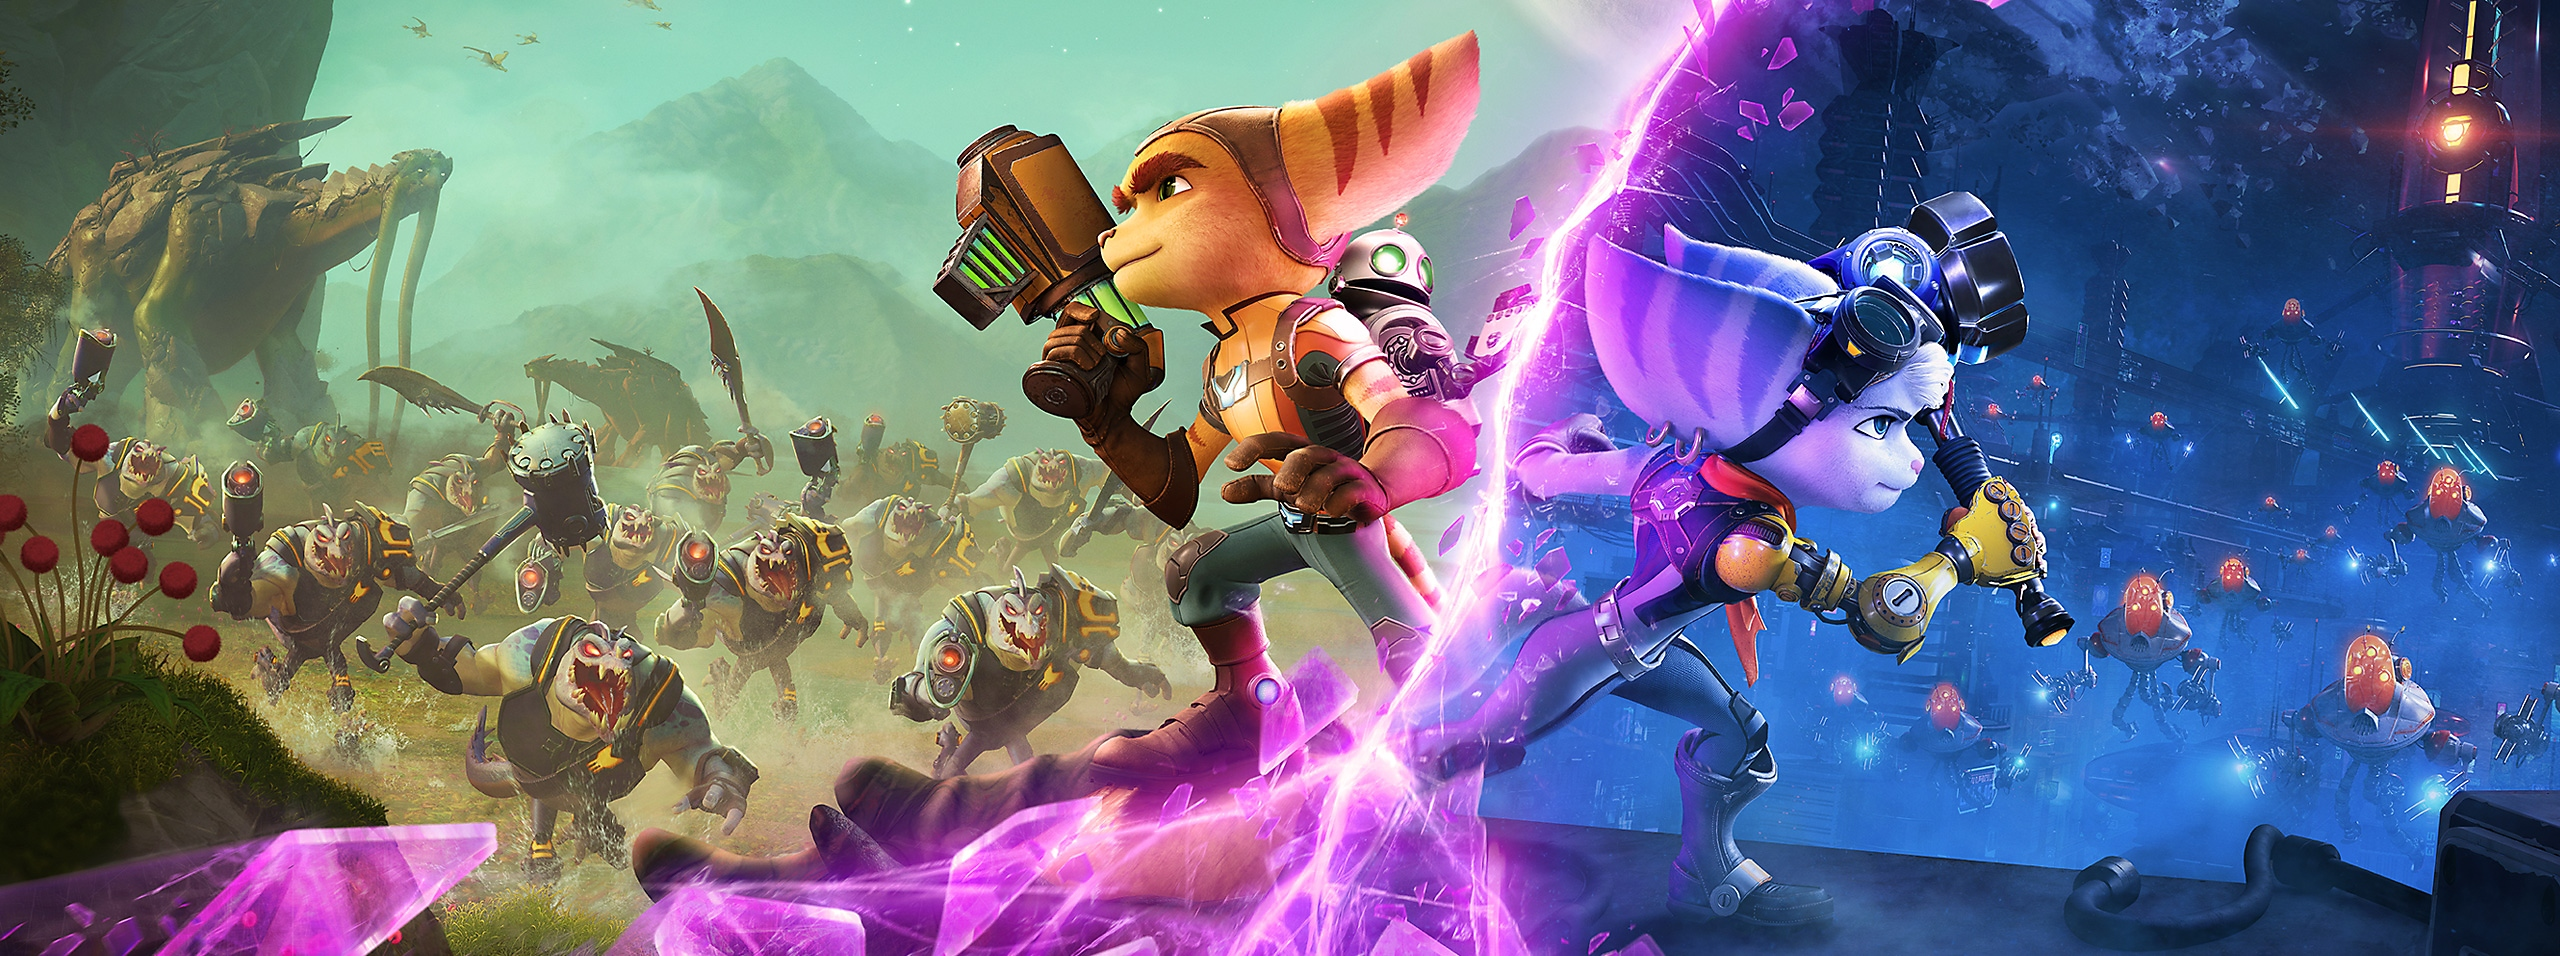 Ratchet and Clank: Rift Apart – ілюстрація